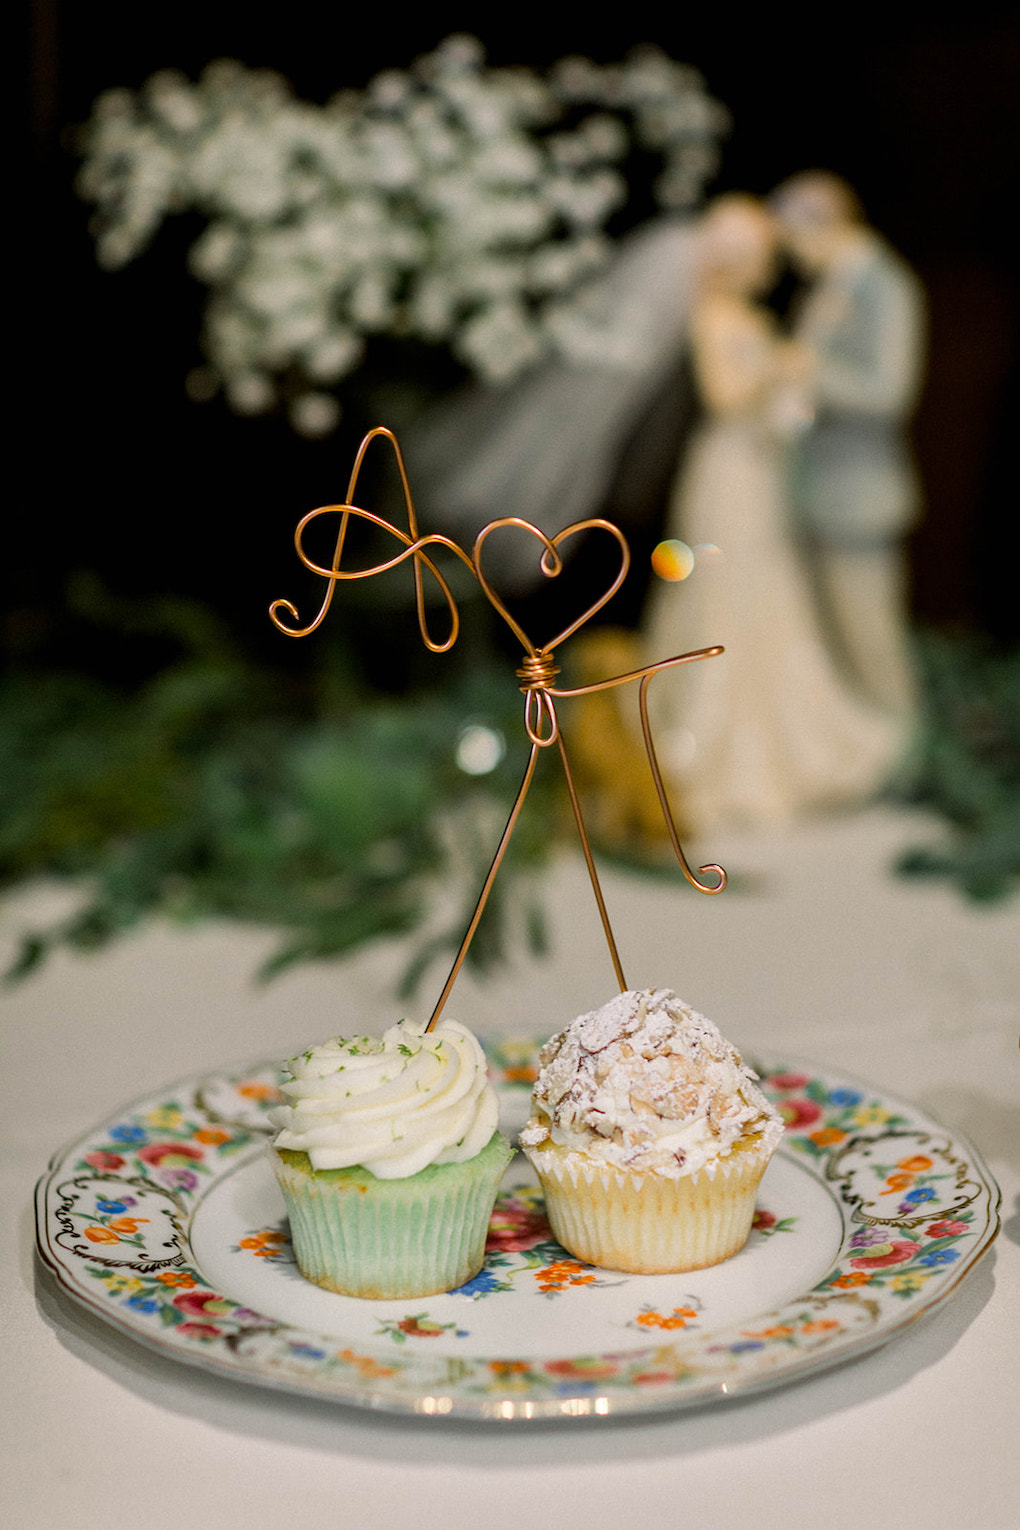 His and hers wedding cupcakes: Pittsburgh Botanic Garden wedding planned by Exhale Events. See more wedding inspiration at exhale-events.com!